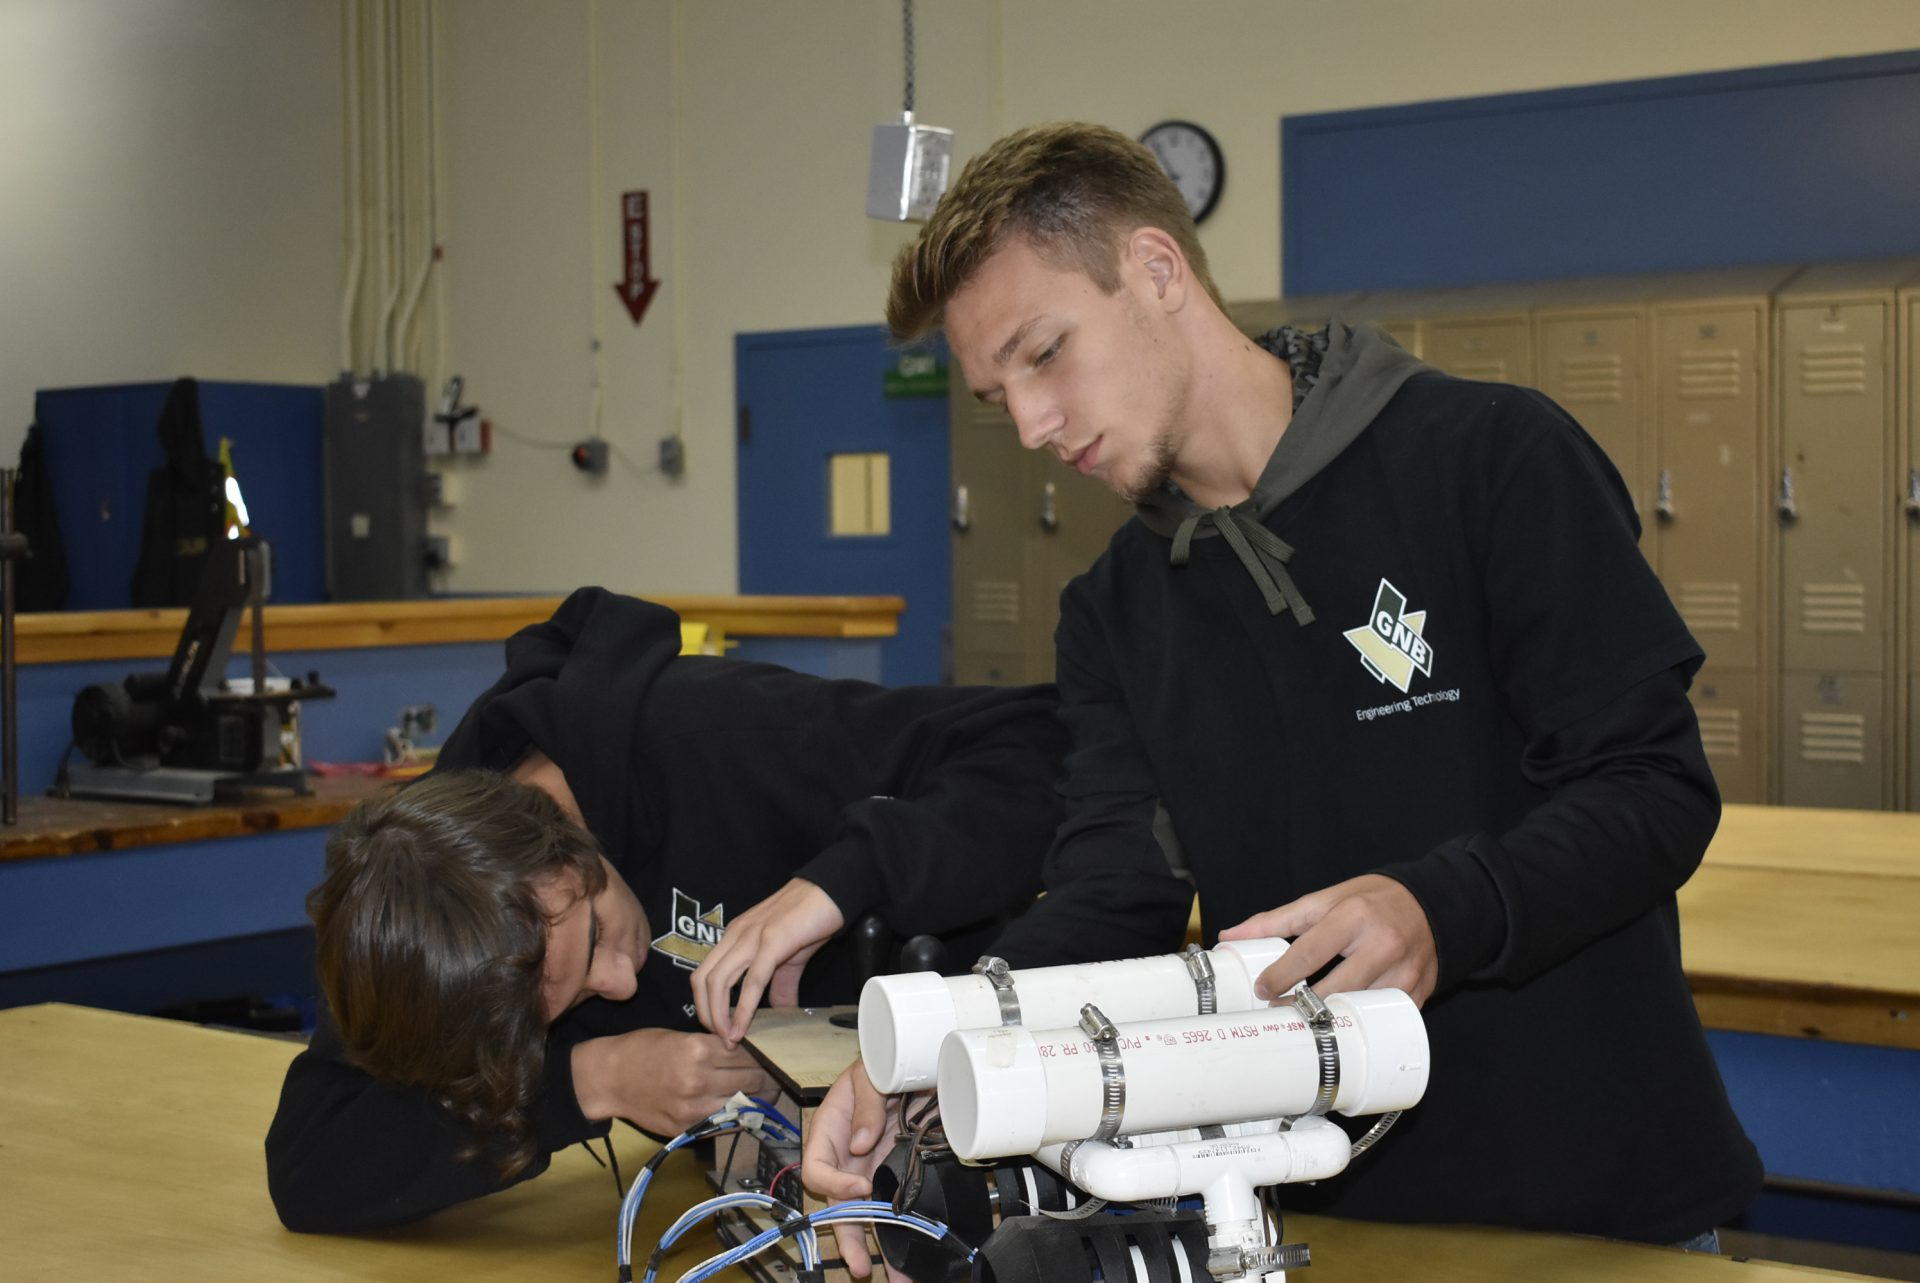 Engineering Students Working Together